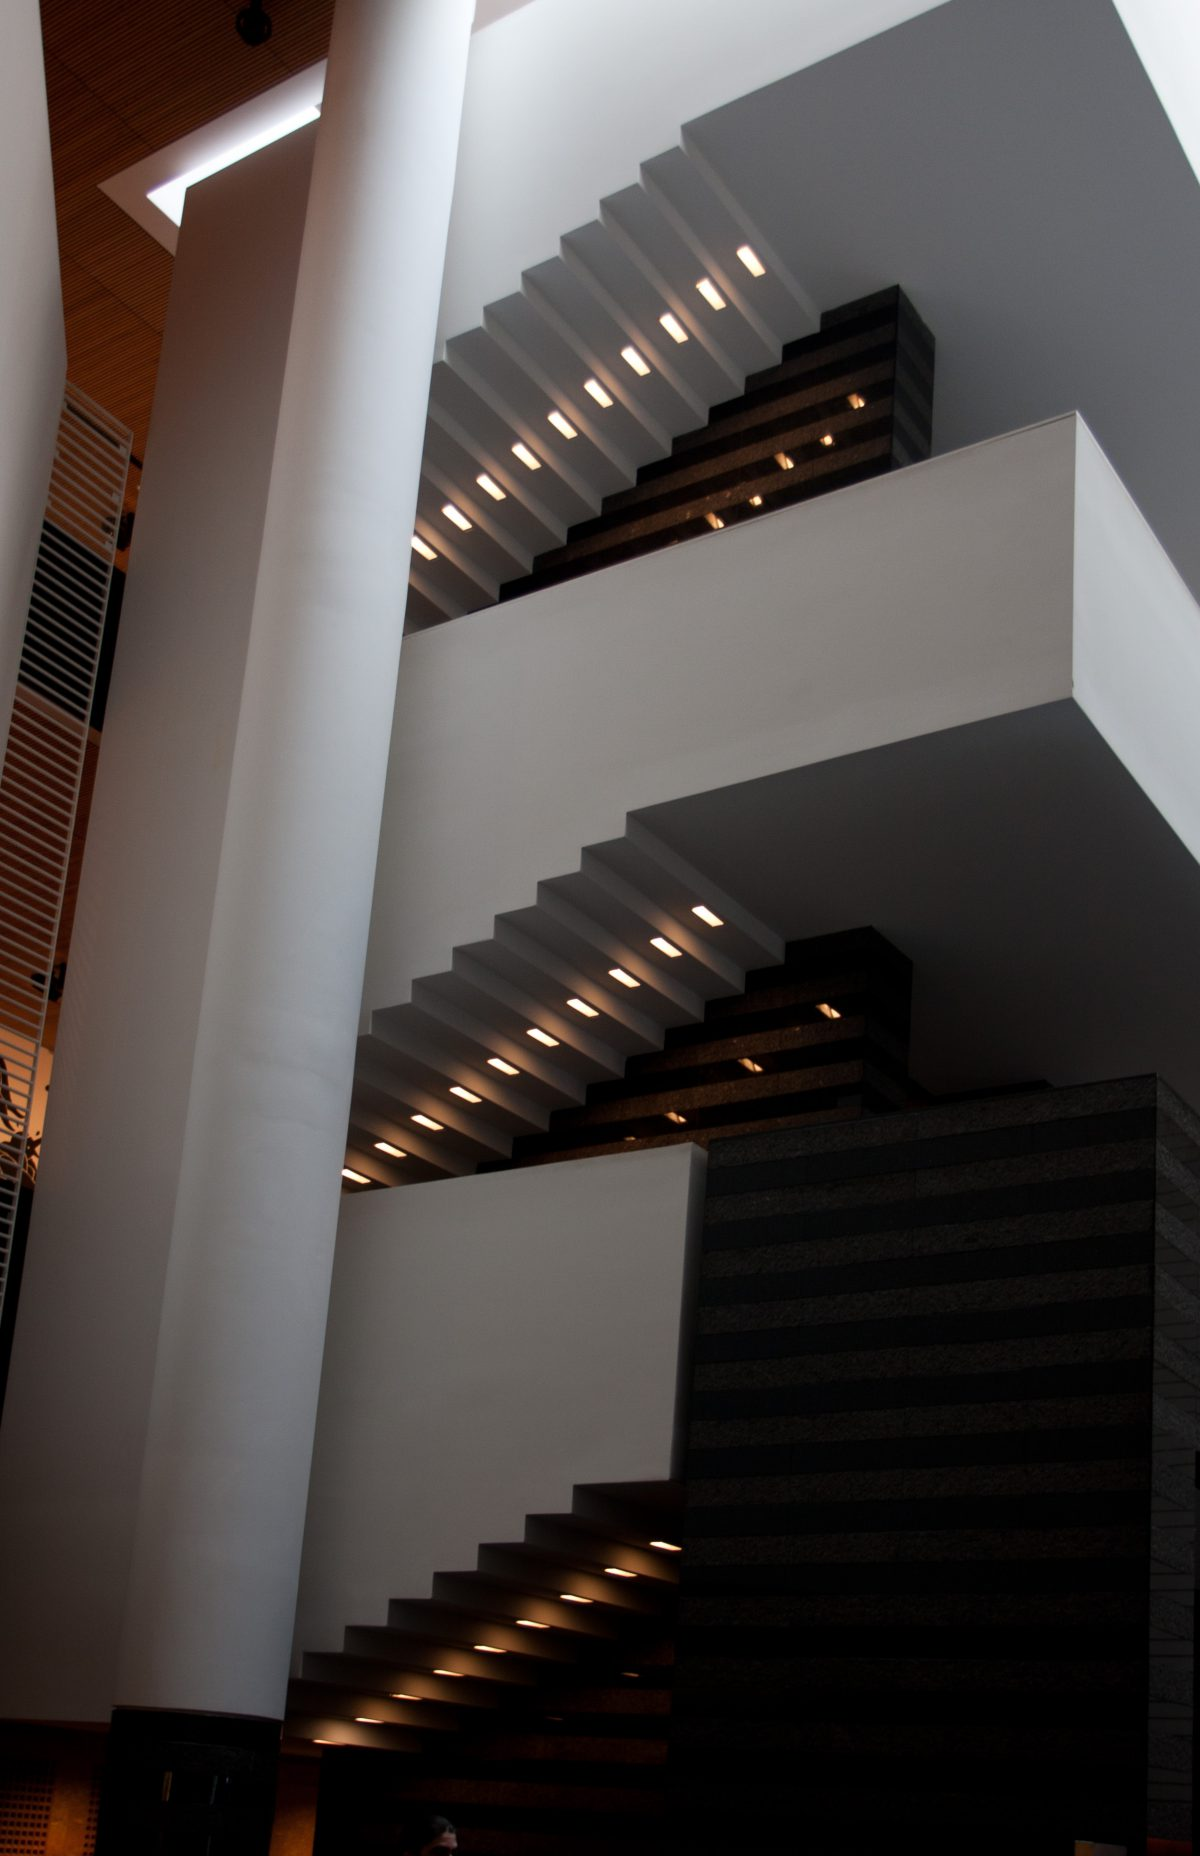 Stairs - At San Francisco Museum of Modern Art, building, stair